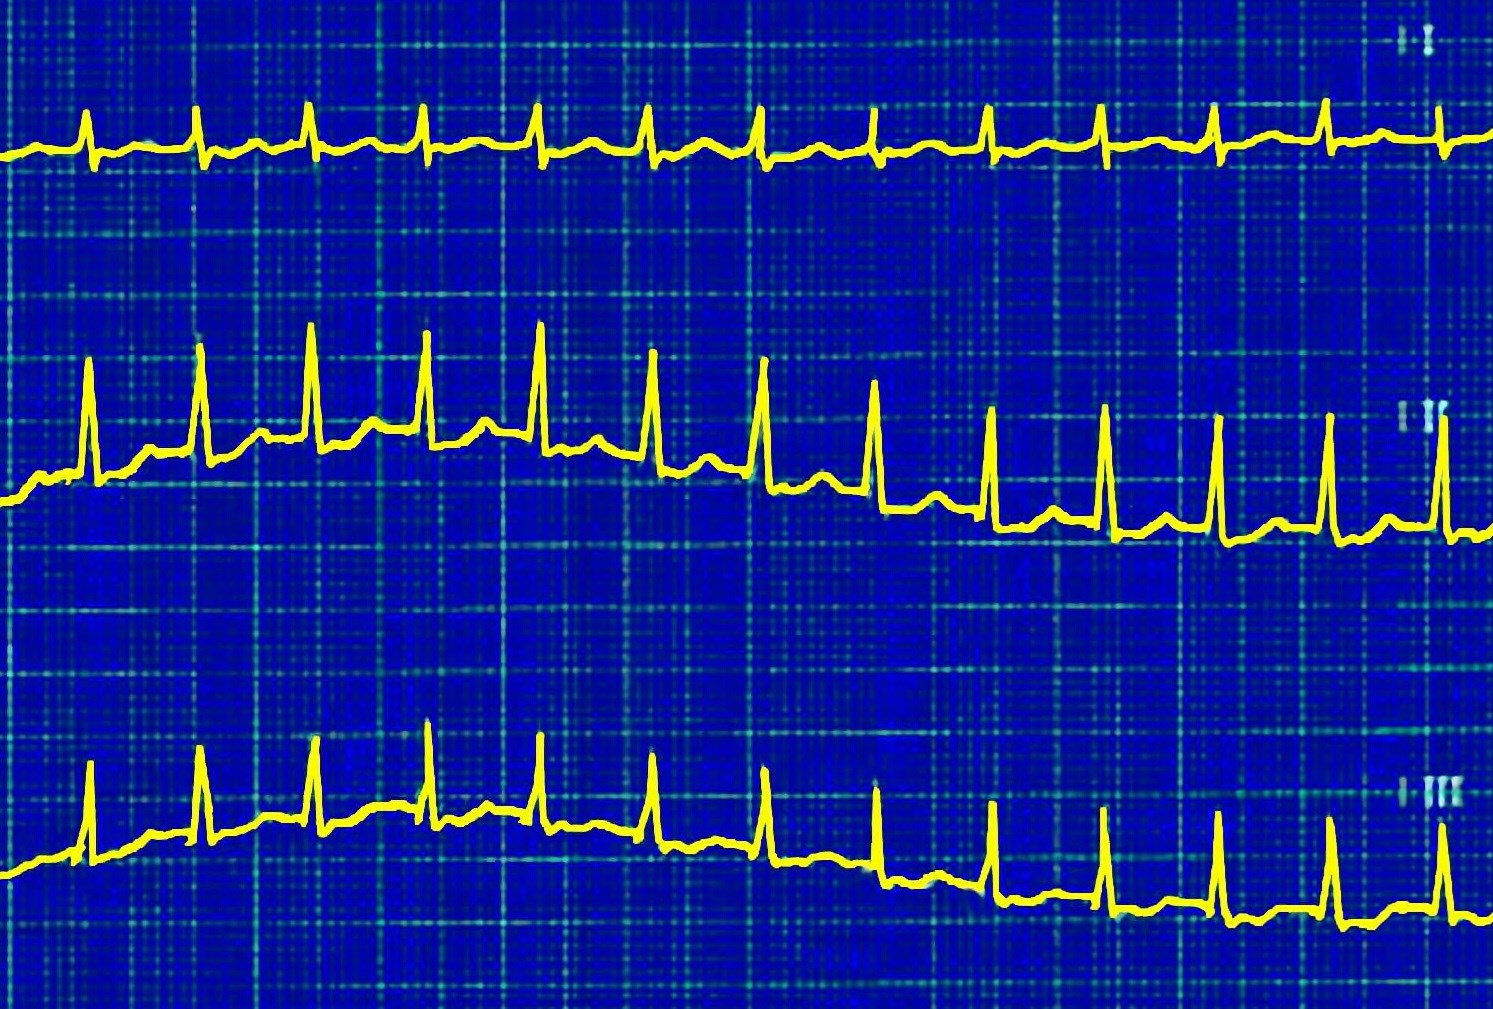 A patient has experienced heart palpitations for the past week, which became worse after mowing his lawn in the hot summer sun. <i>Photo Credit: ISM / Sovereign</i>